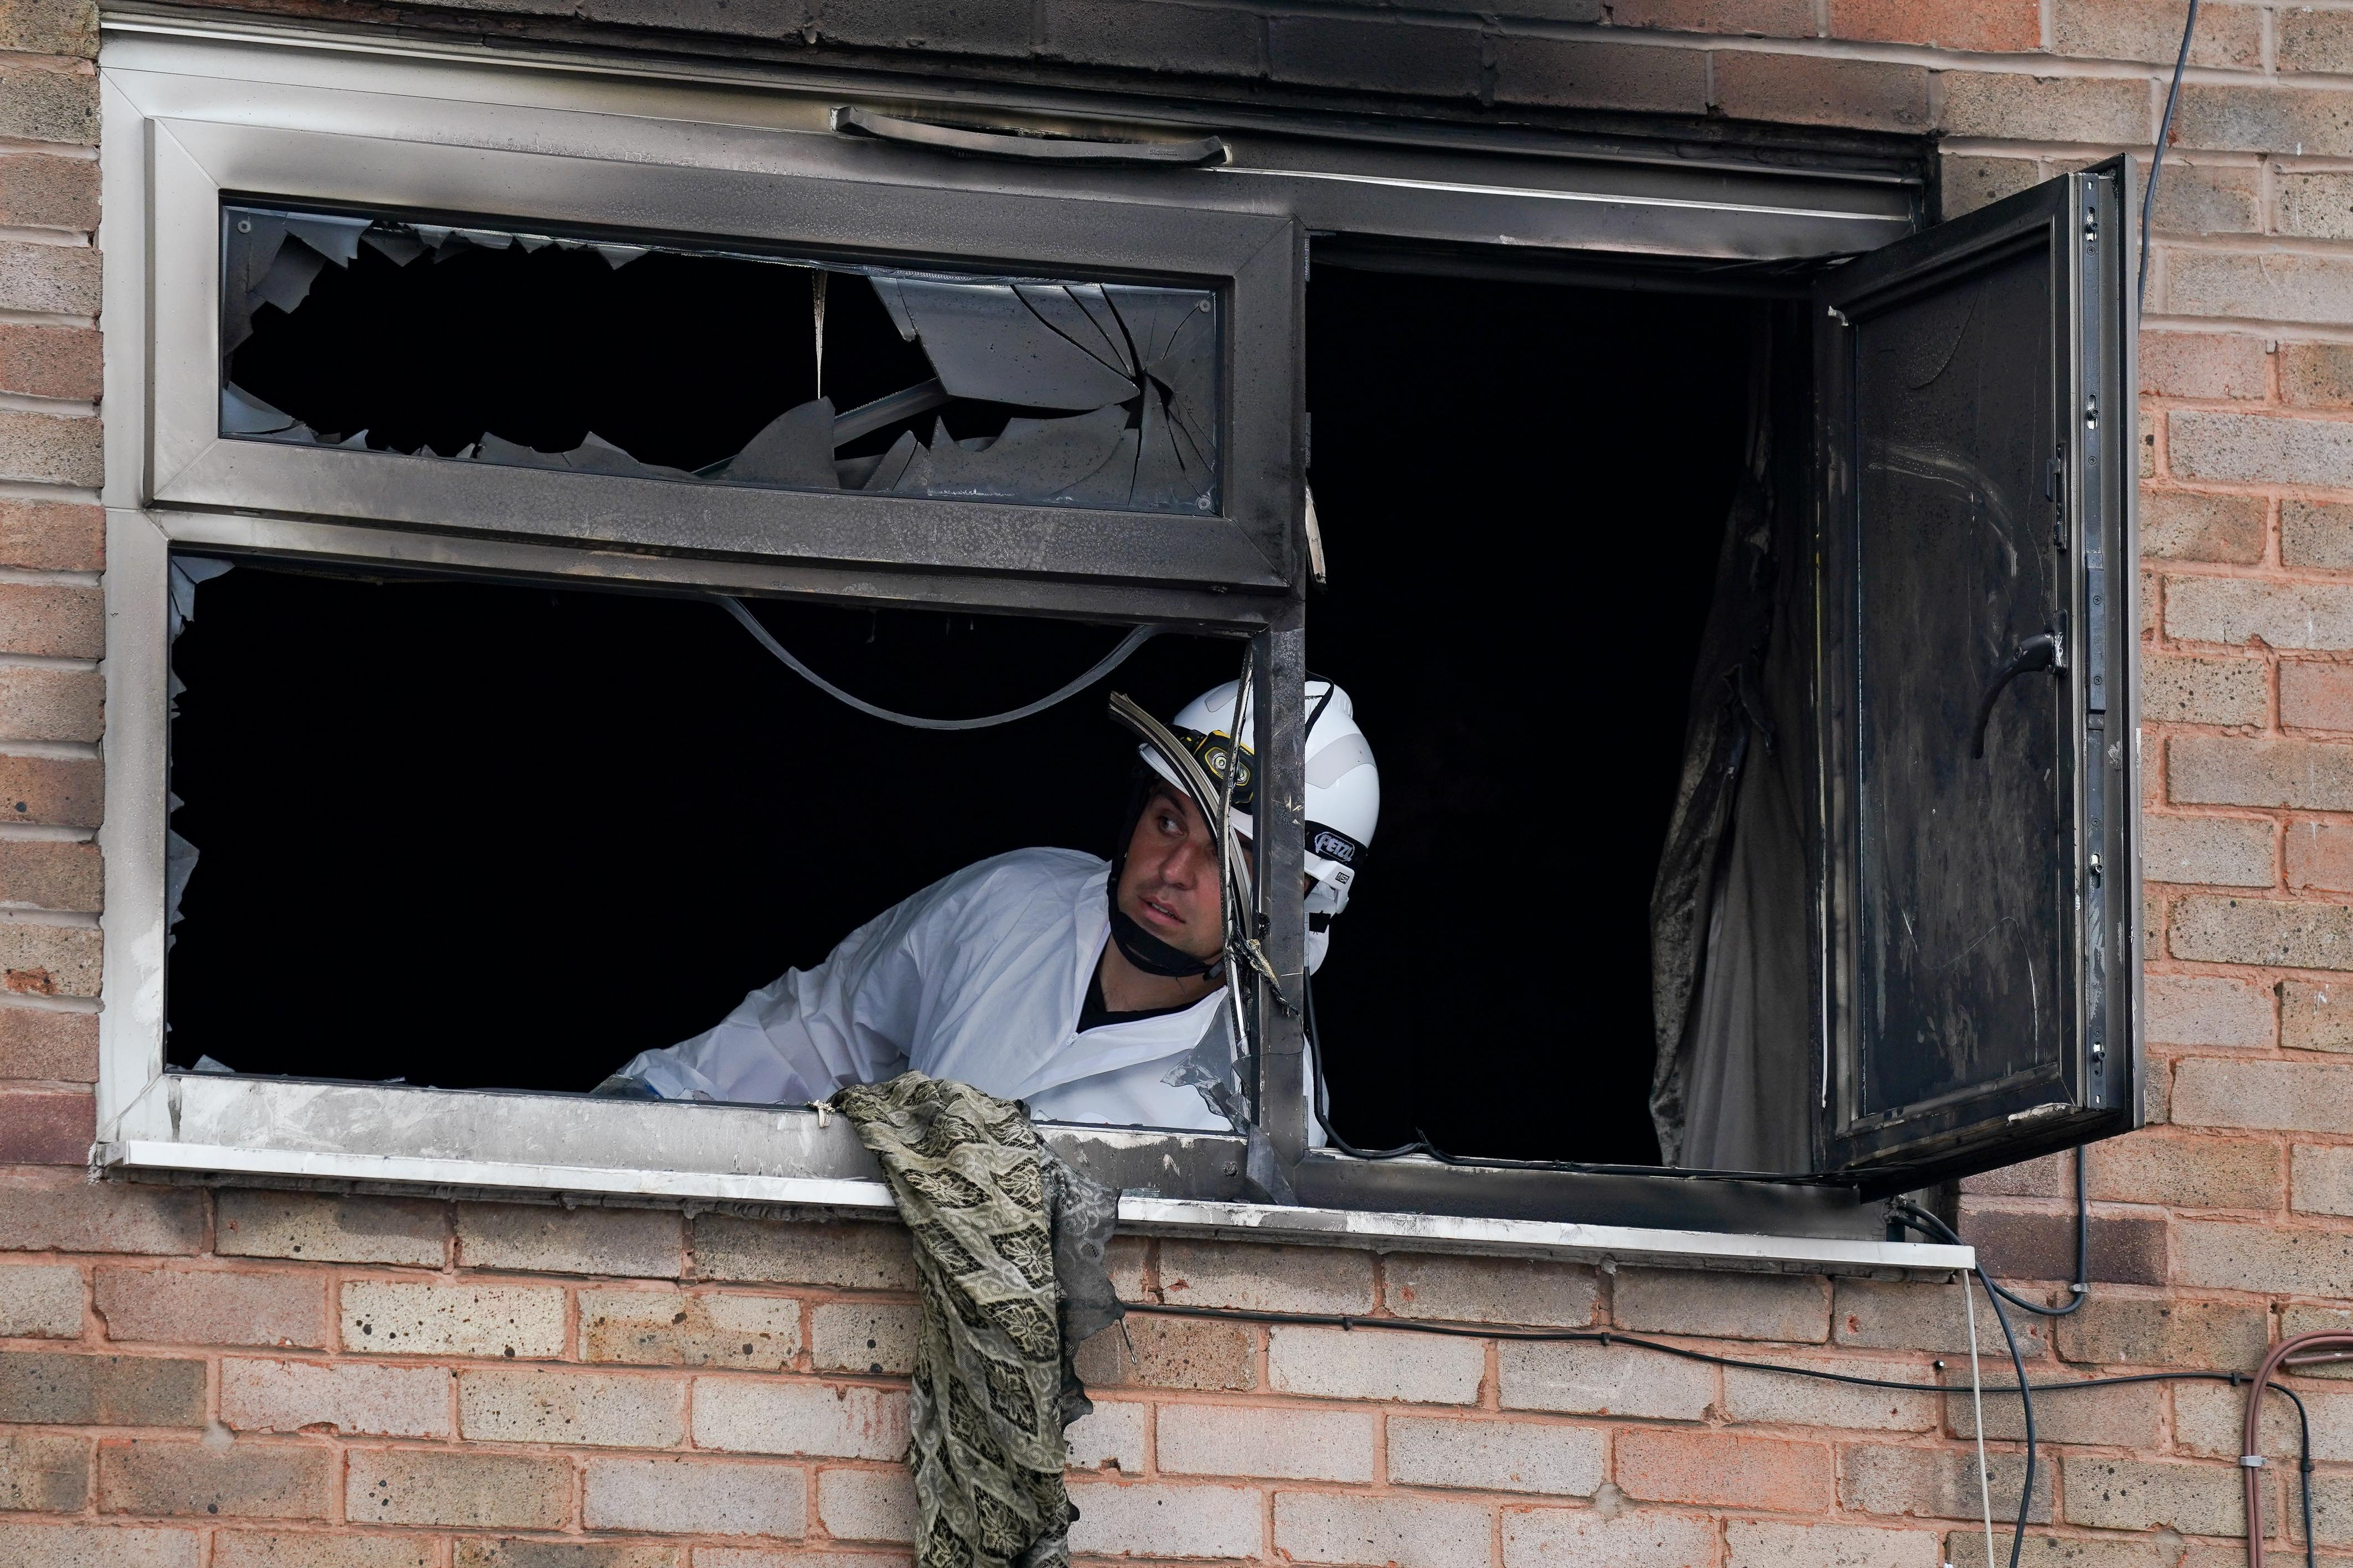 <p>Officers at a property on Tame Road in Tipton, West Midlands, where a house fire Tuesday evening has caused the death of a man and left a woman in hospital with smoke inhalation. An 18-year-old woman has been arrested on suspicion of arson. Picture date: Wednesday August 4, 2021.</p>